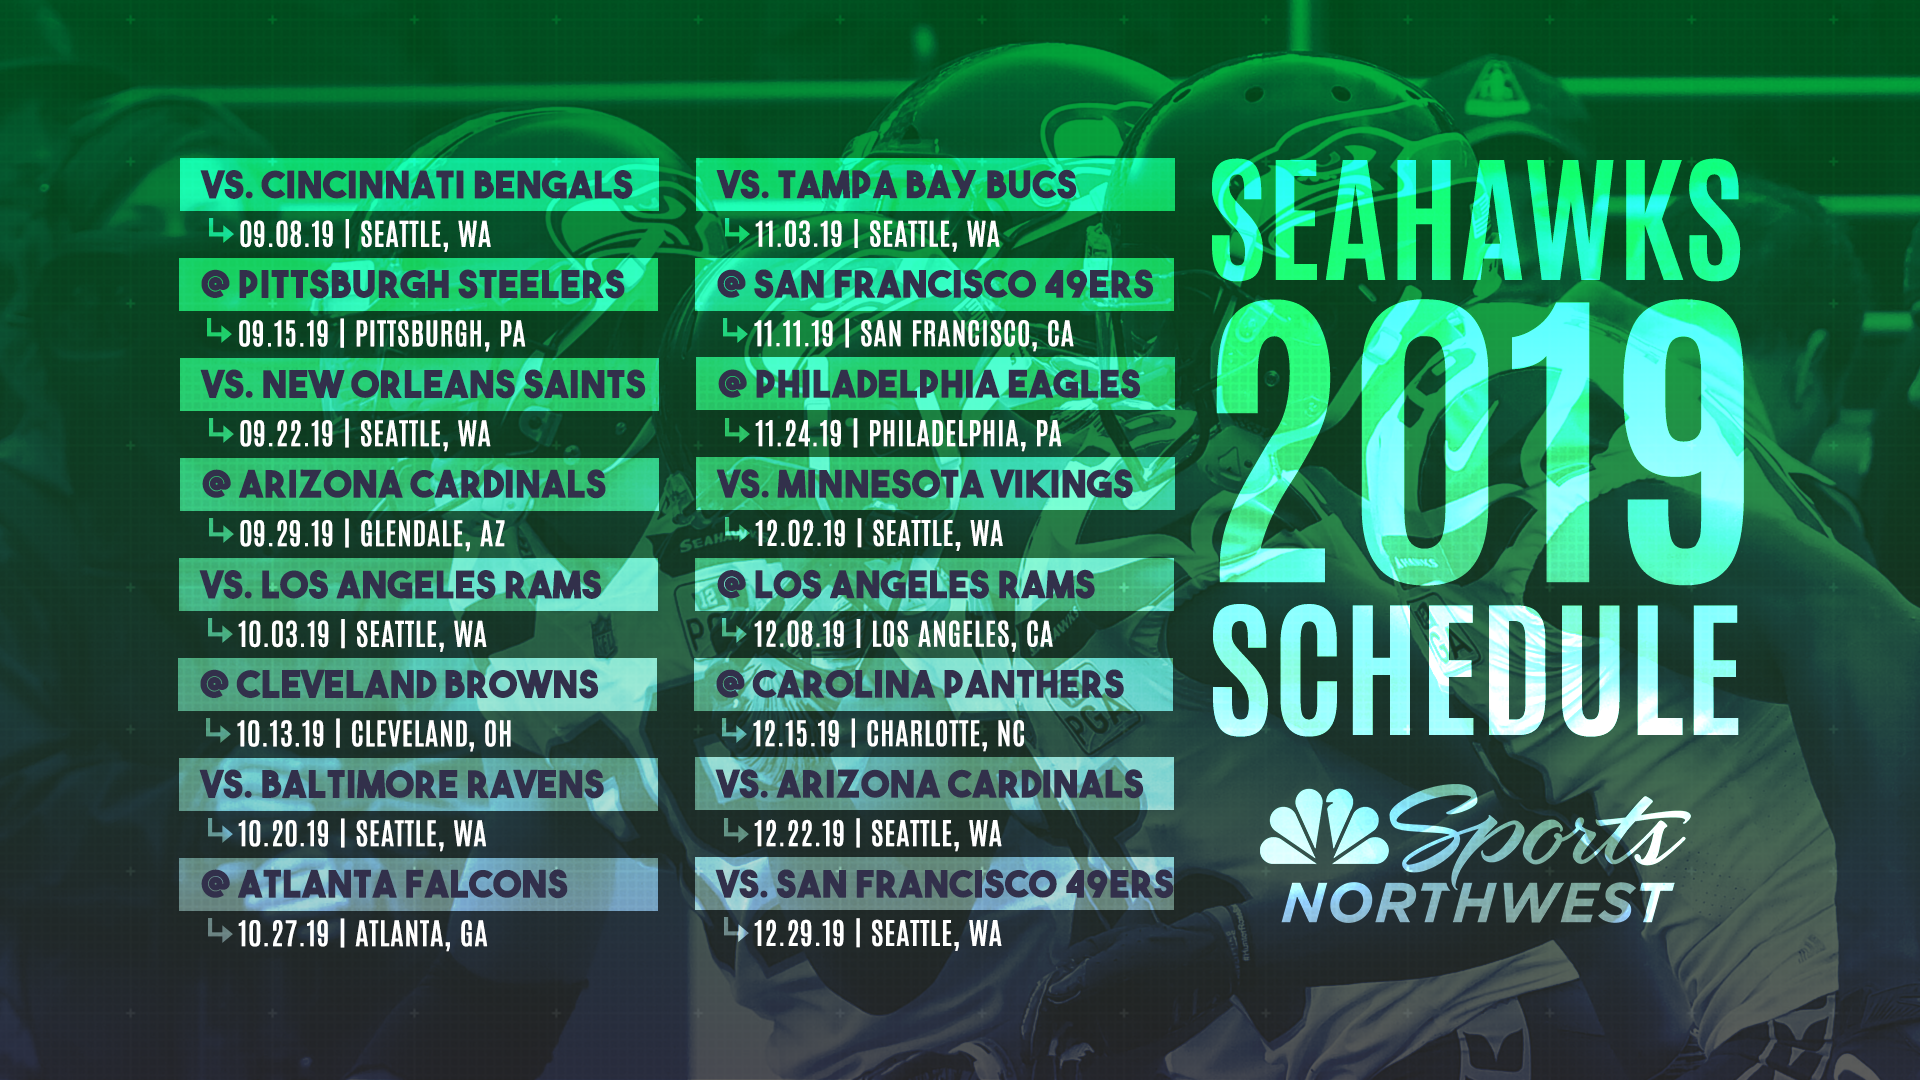 Carolina Panthers Schedule 2020.The 2019 Seattle Seahawks Regular Season Schedule Is Here